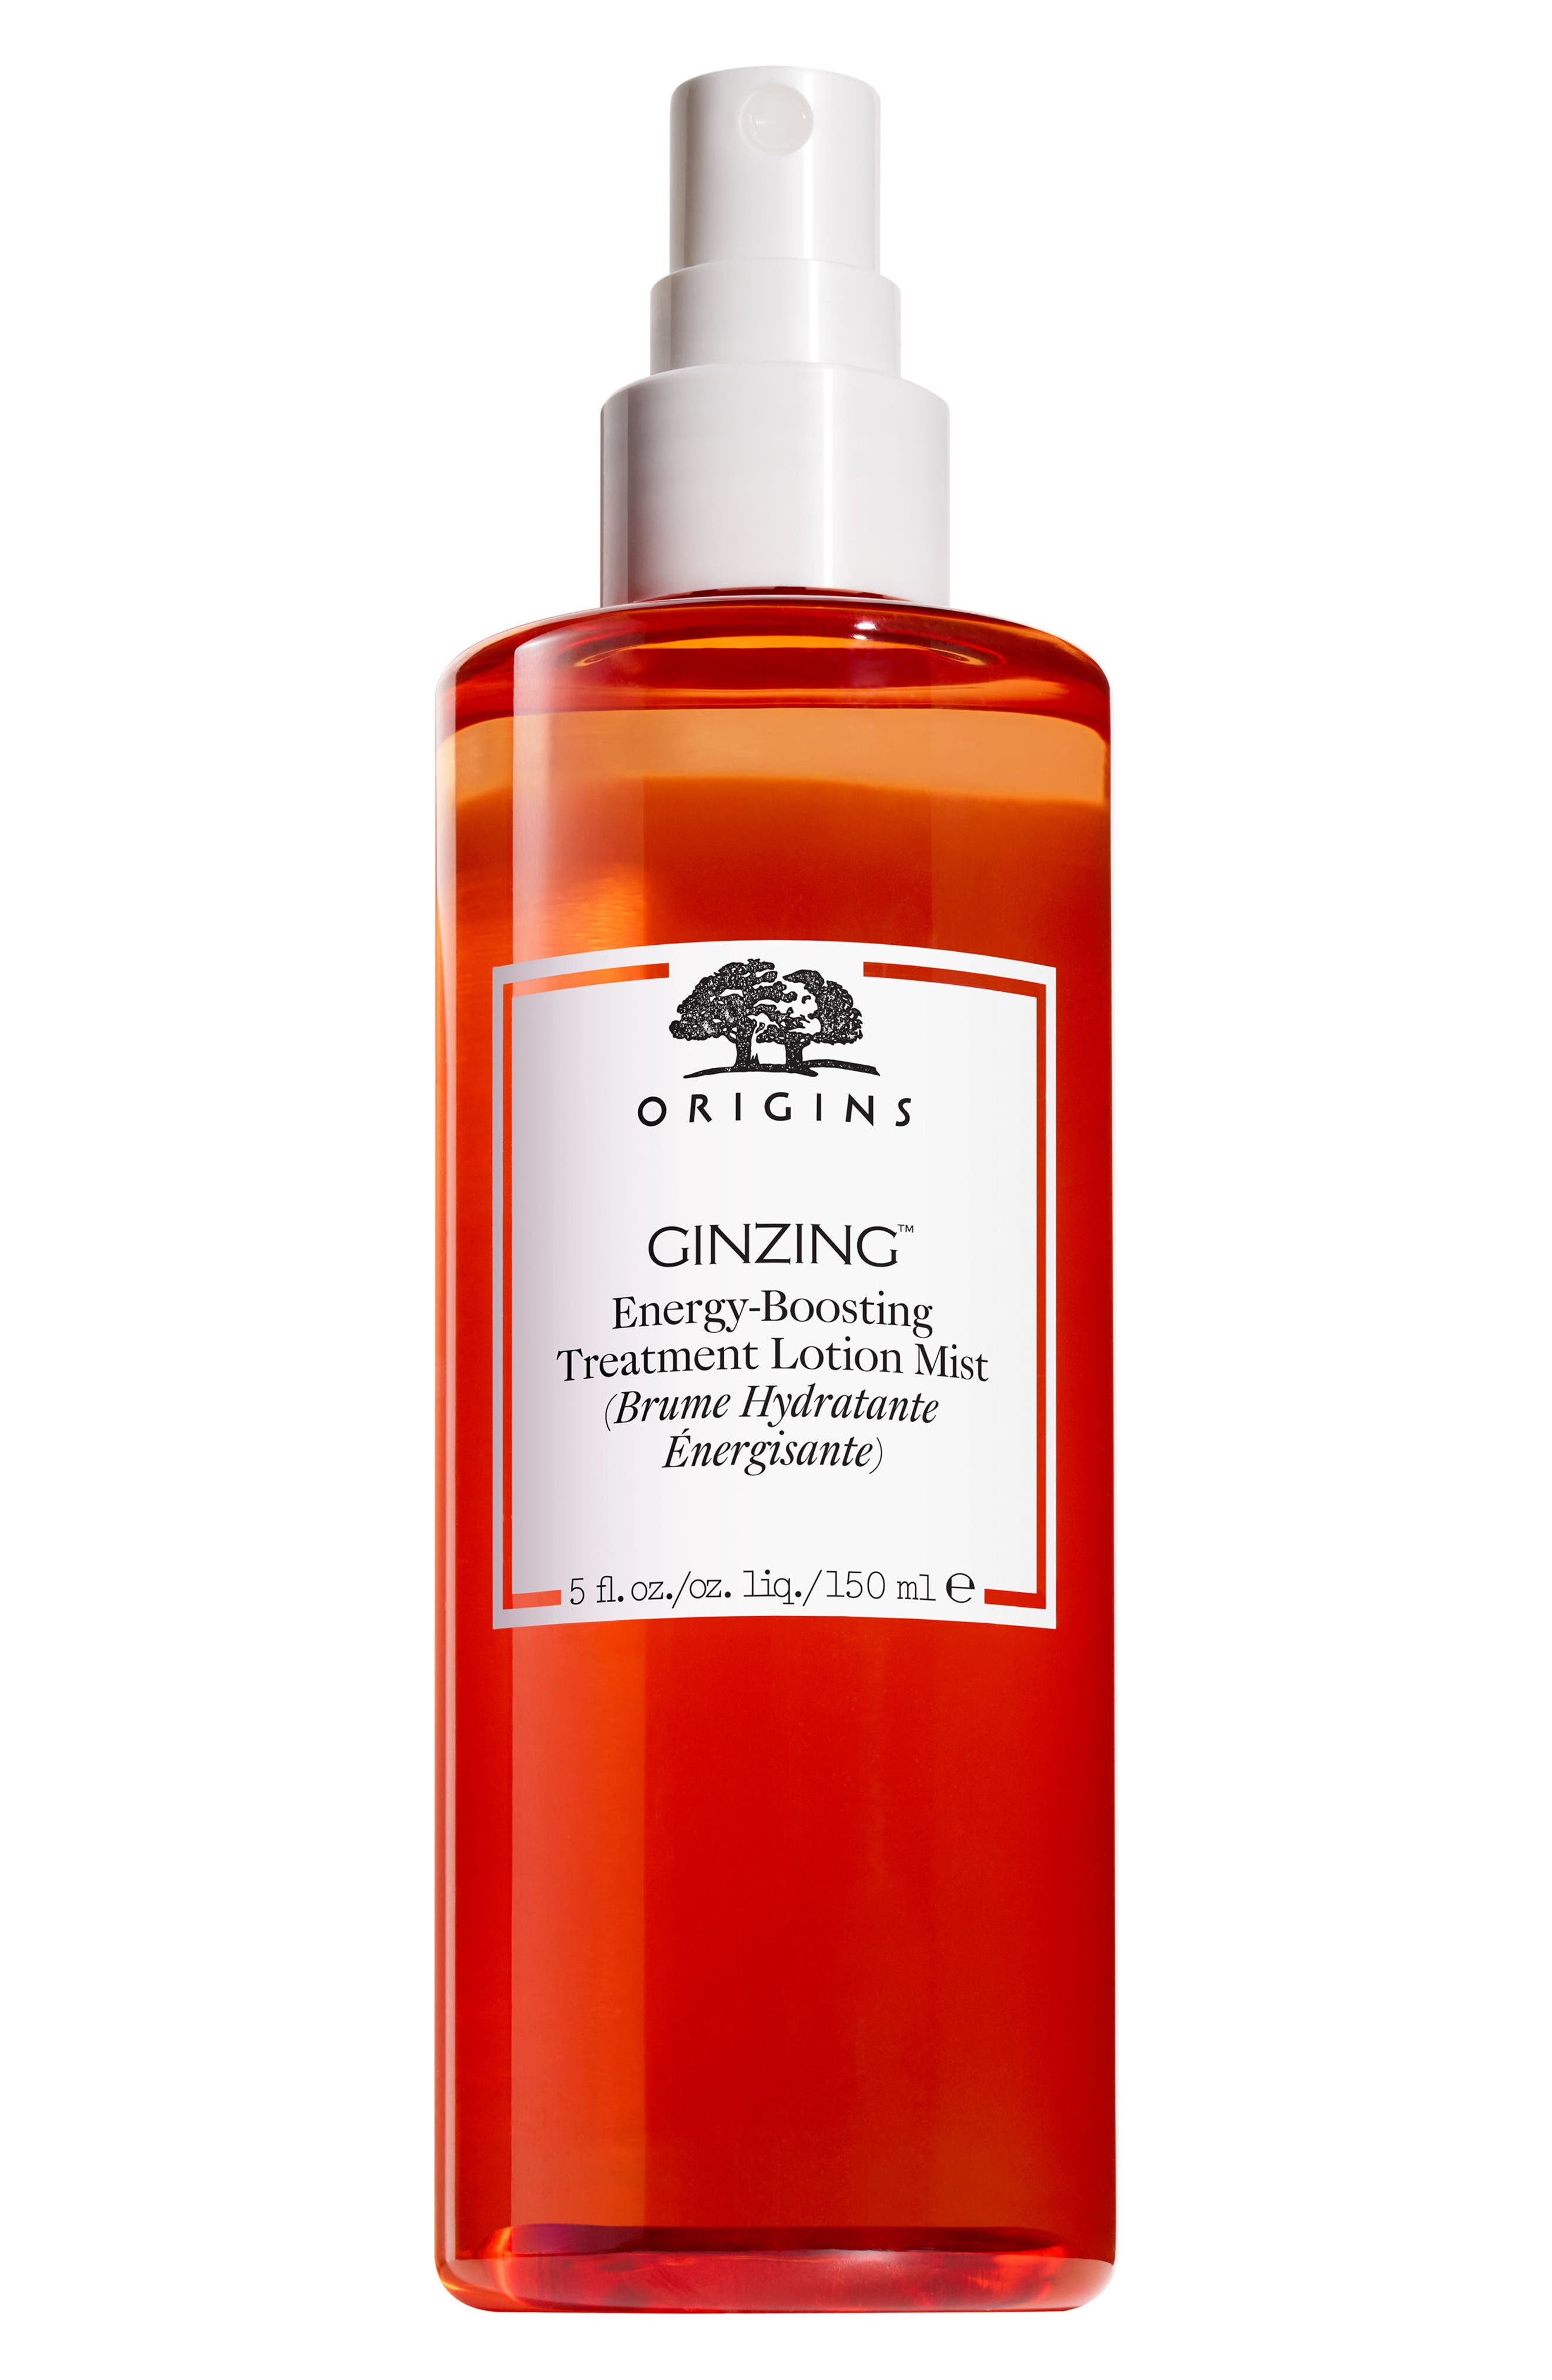 Origins GinZing™ Energy-Boosting Treatment Lotion Mist